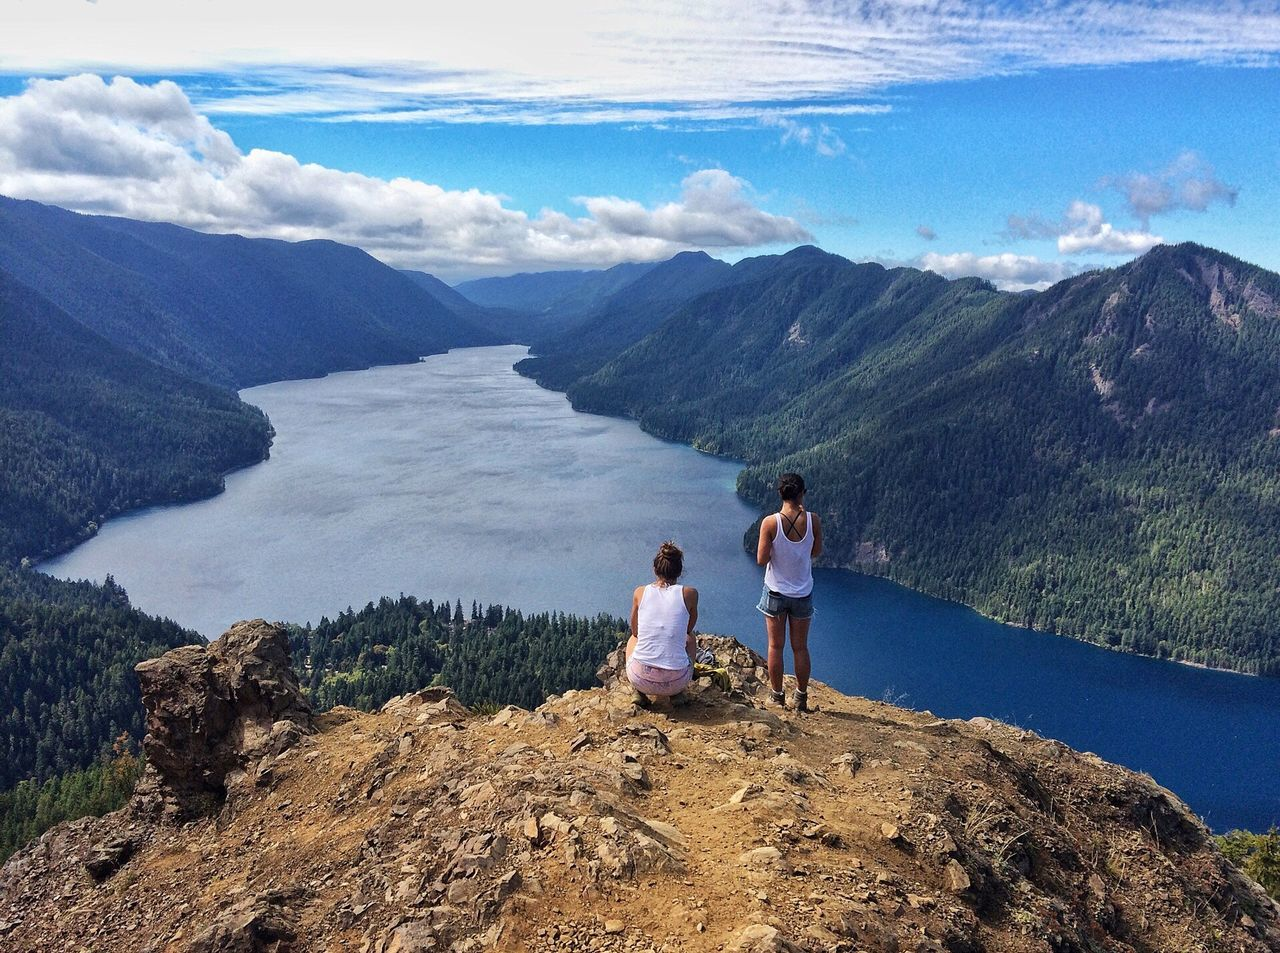 Beauty In Nature Blue Cloud - Sky EyeEm Nature Lover Hikingadventures Lake Landscape Mountain PNW Togetherness Two People Viewpoint Water